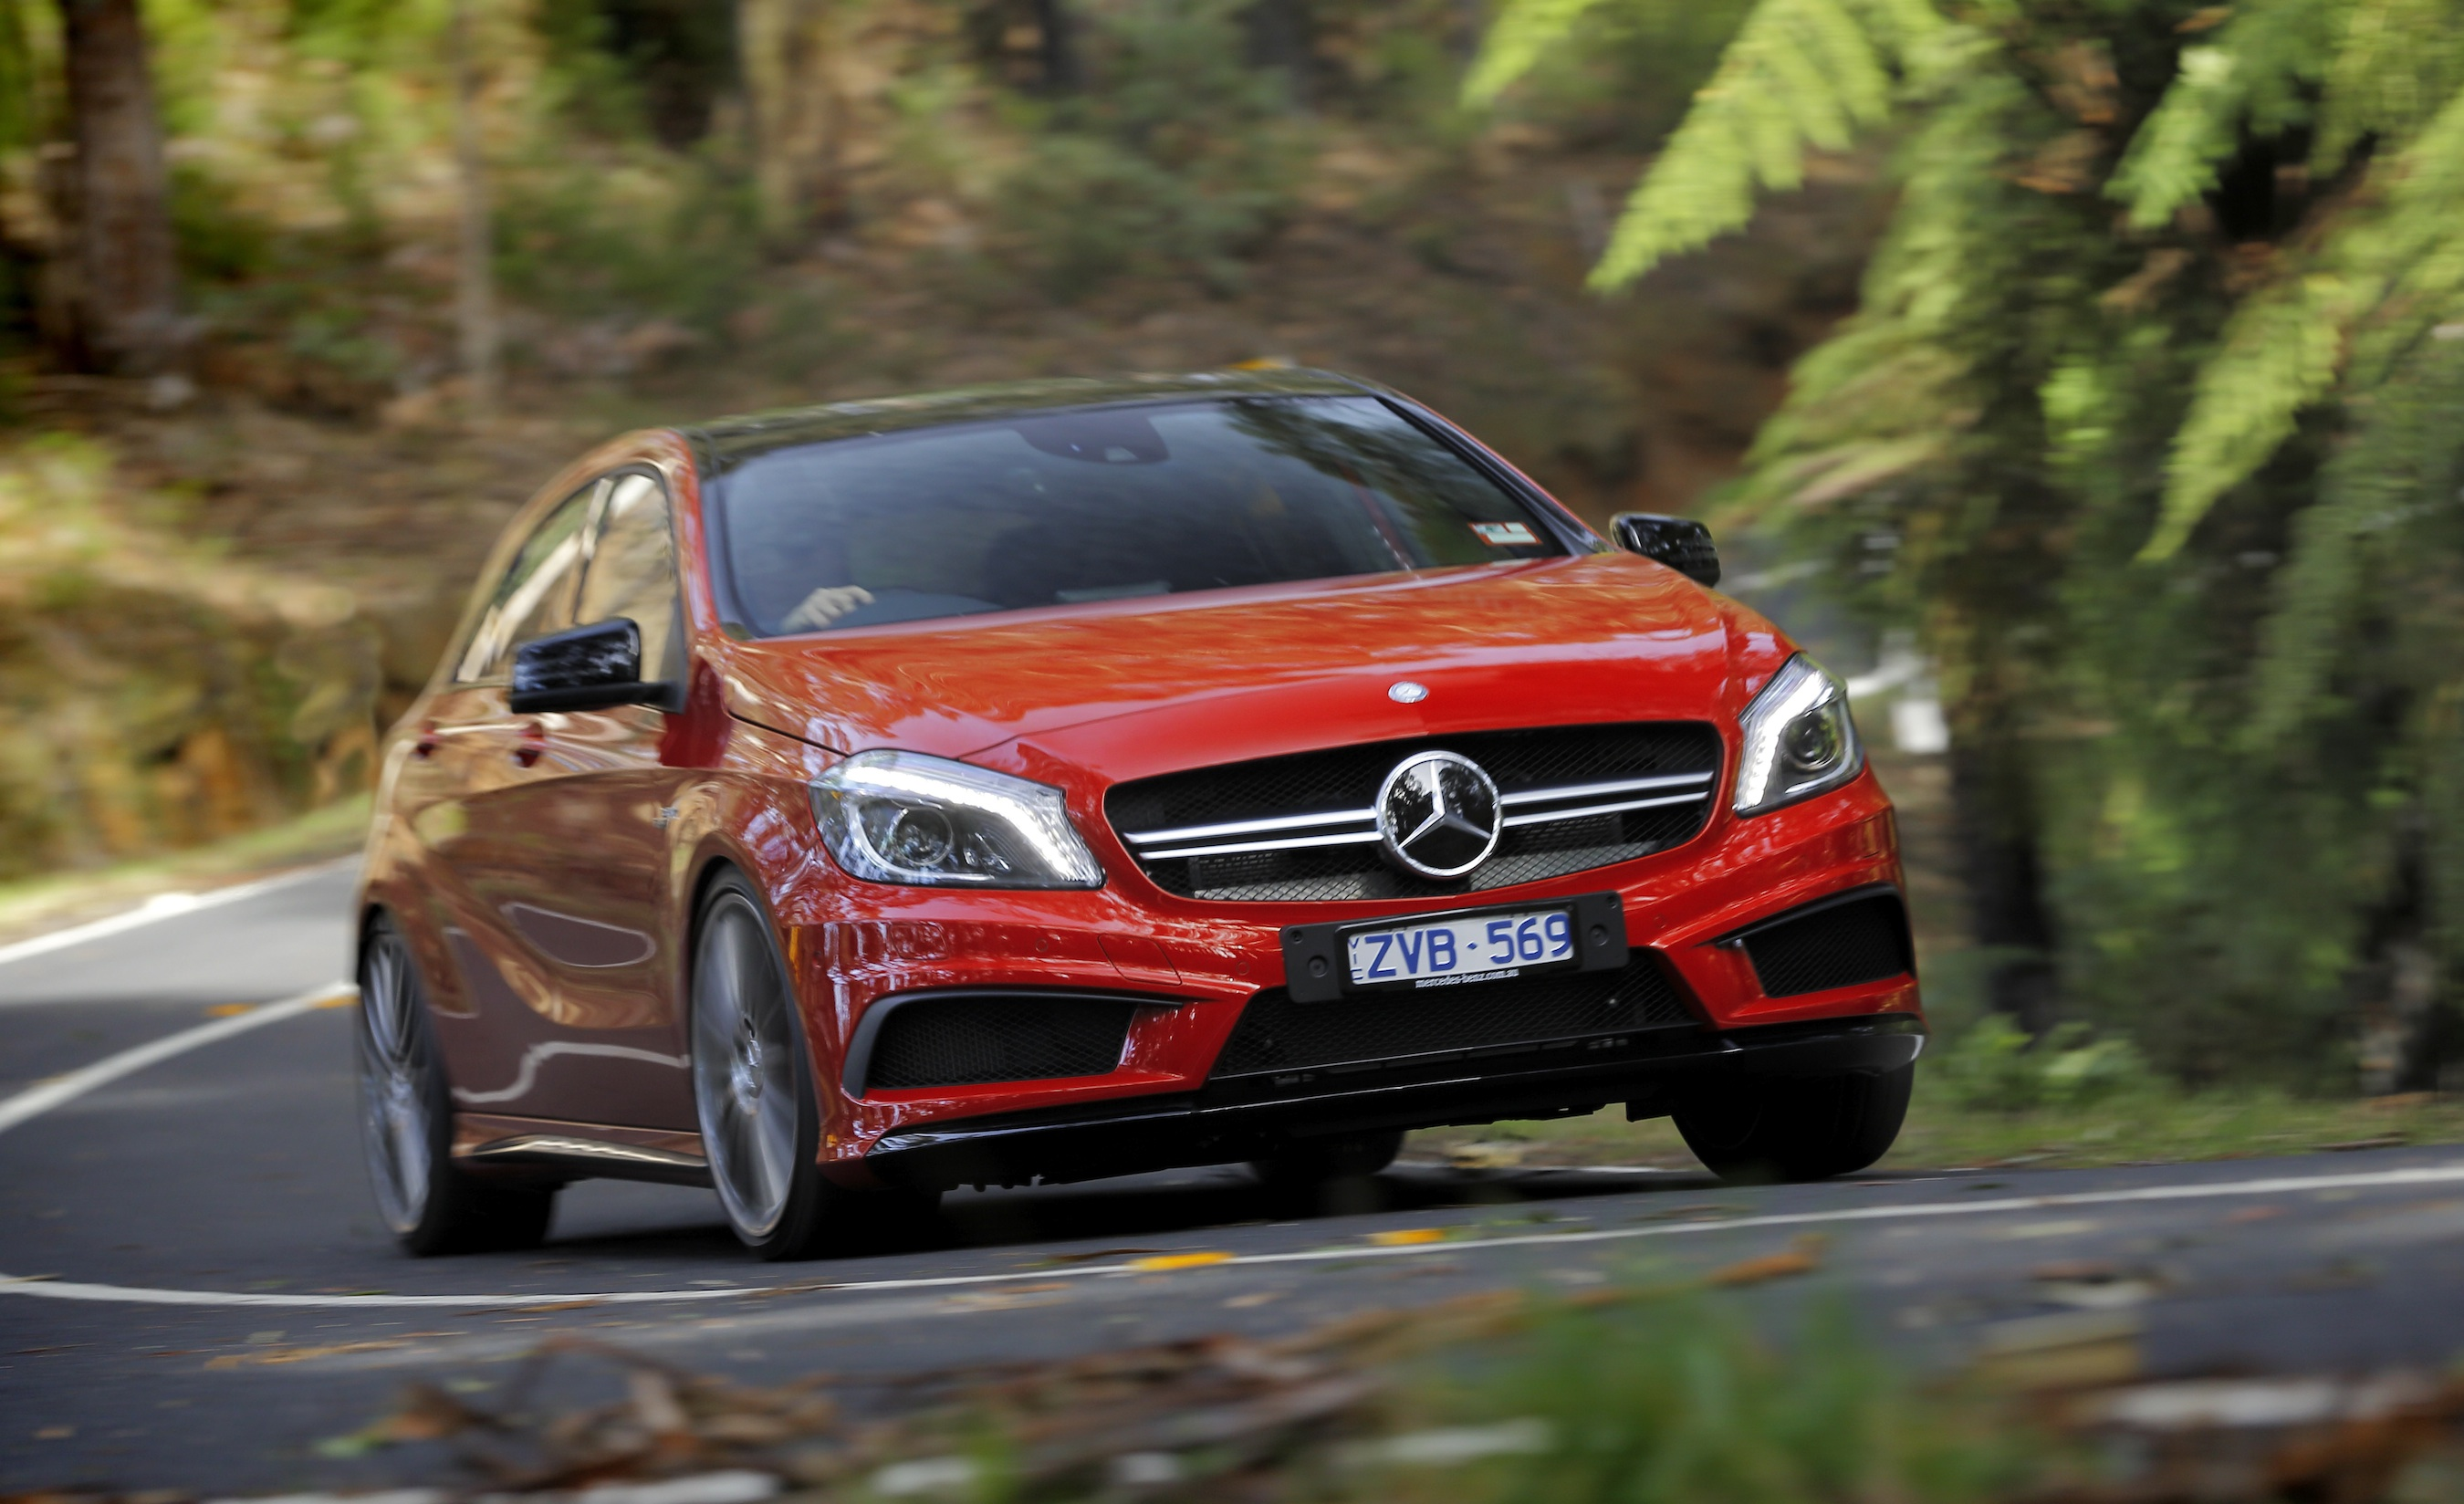 Best of mercedes a45 amg service costs fiat world test drive for Mercedes benz a service cost